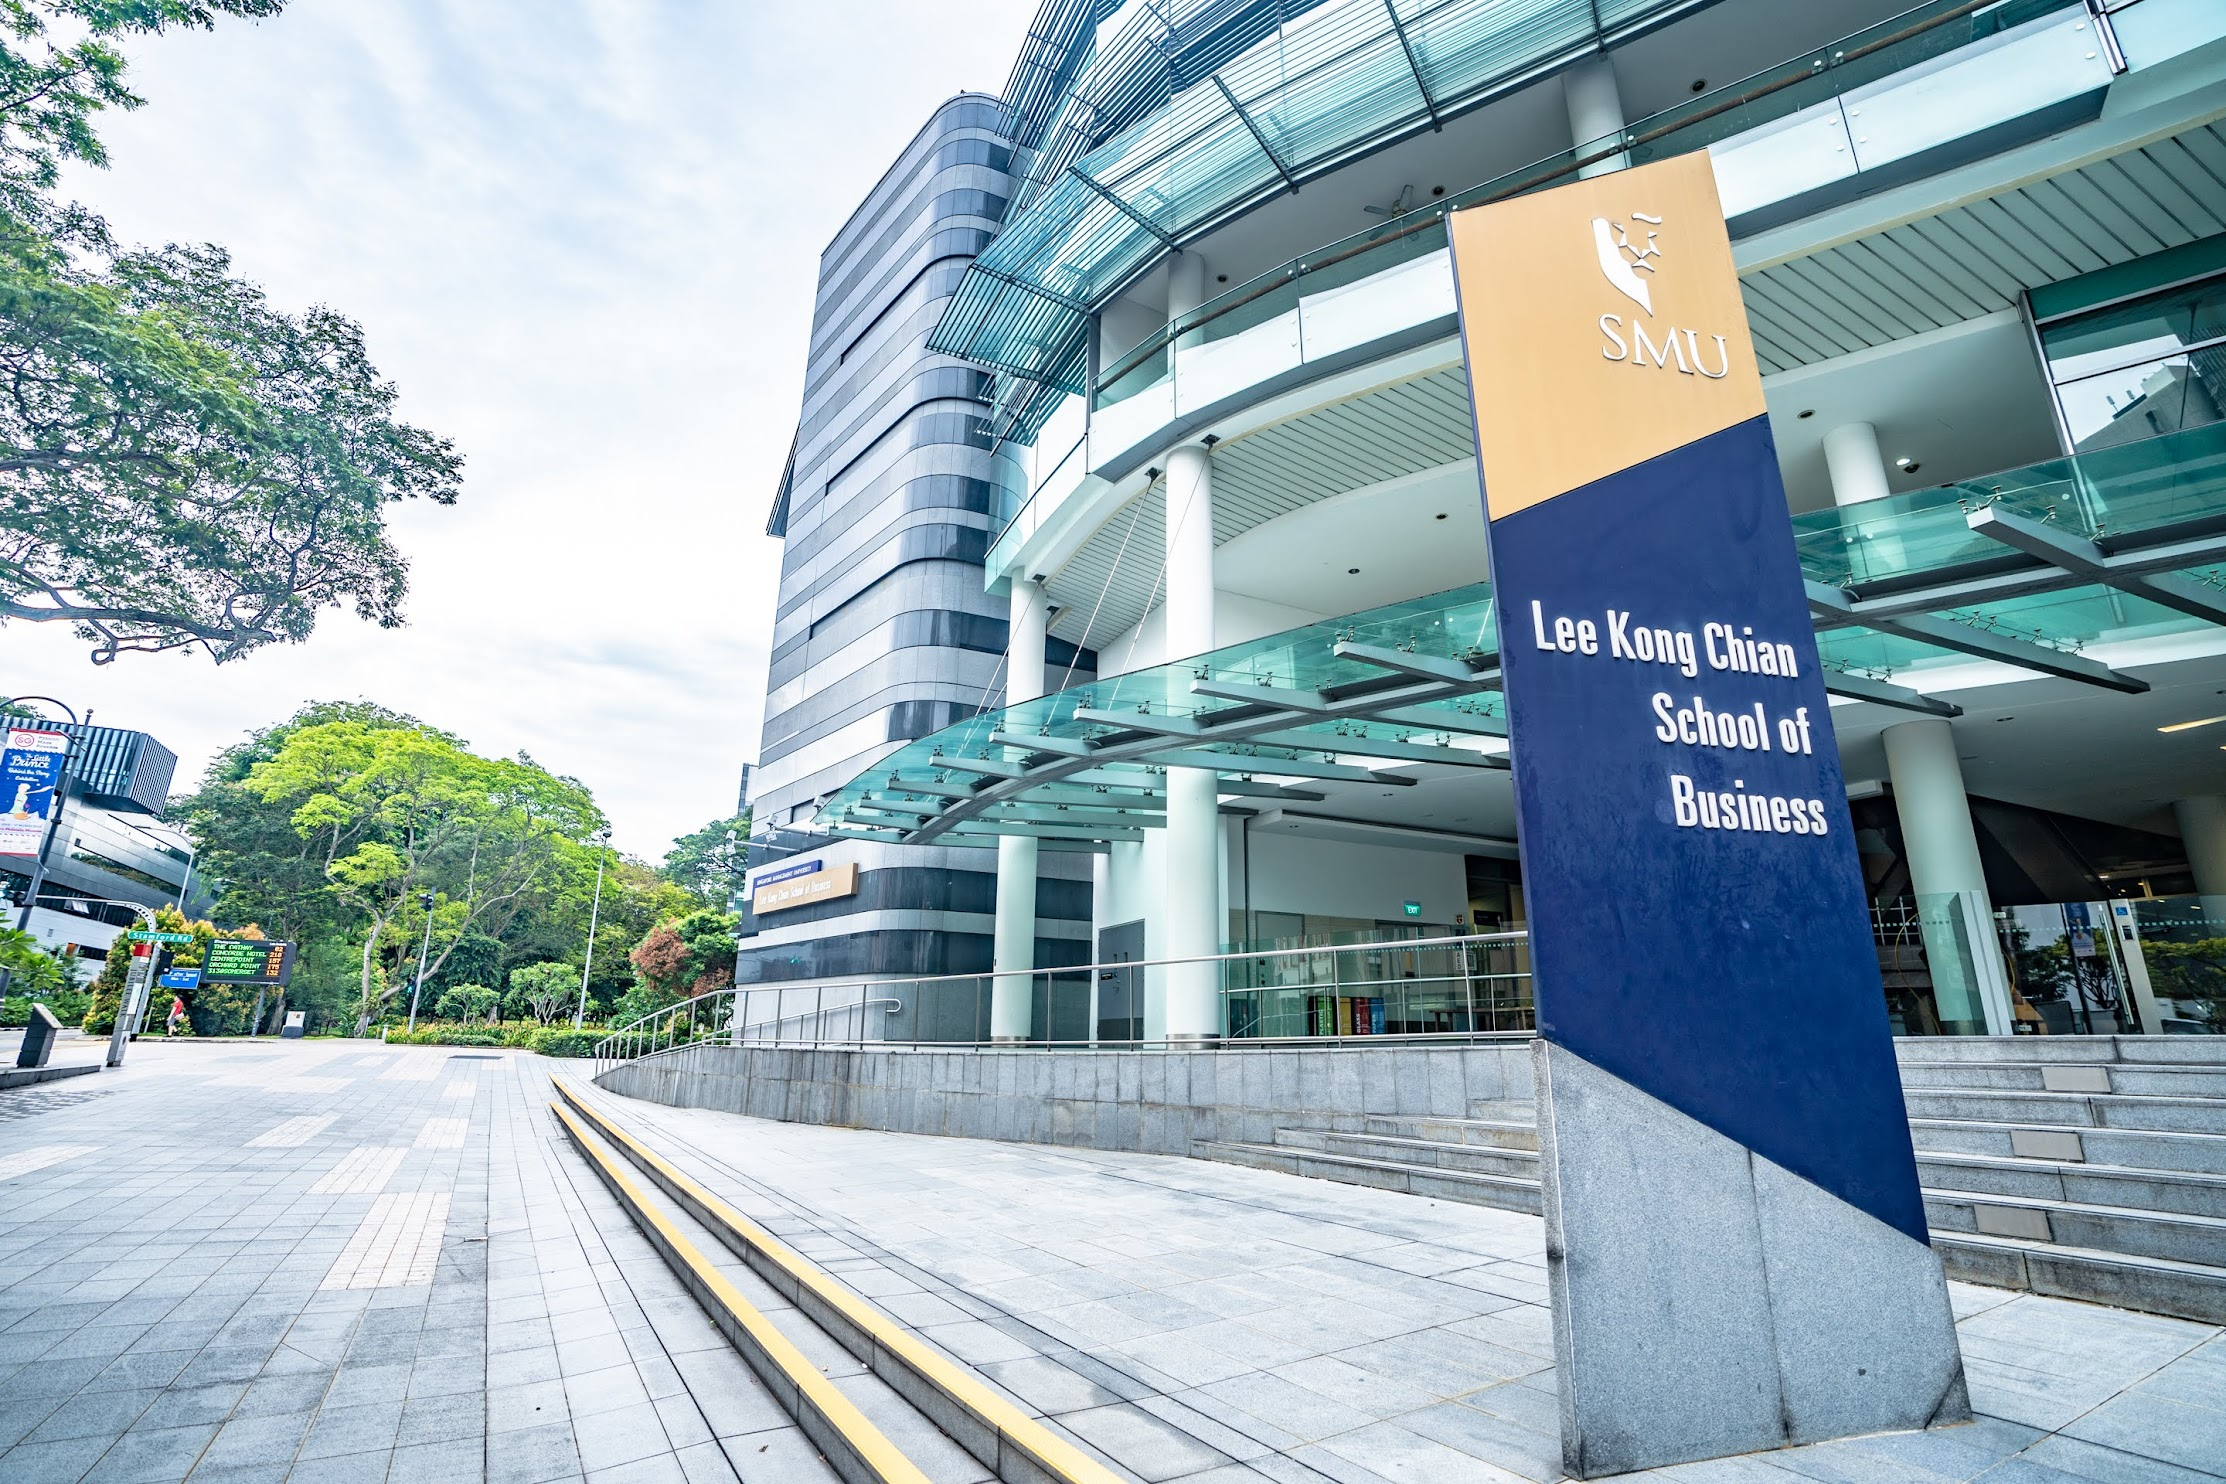 Singapore SMU Business School1